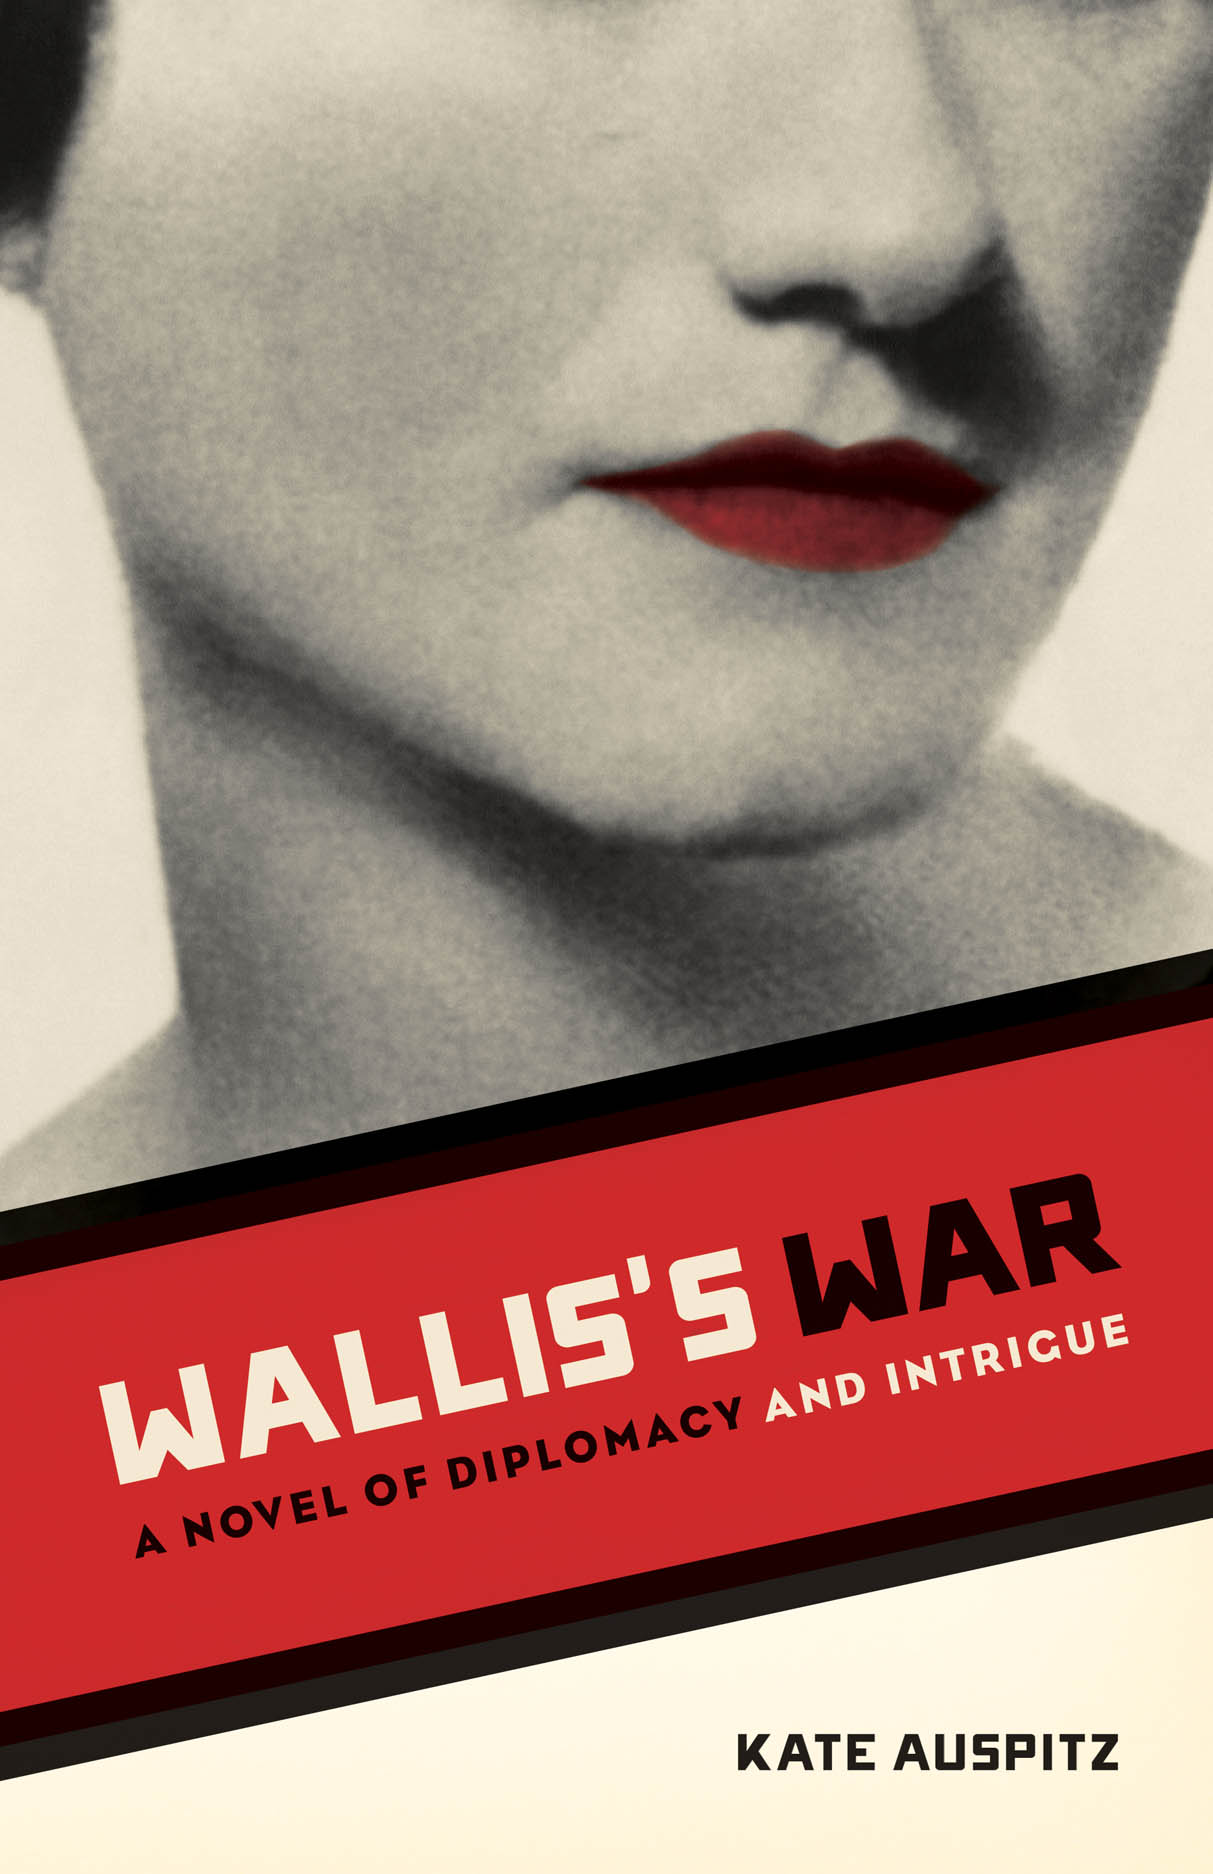 Wallis's War